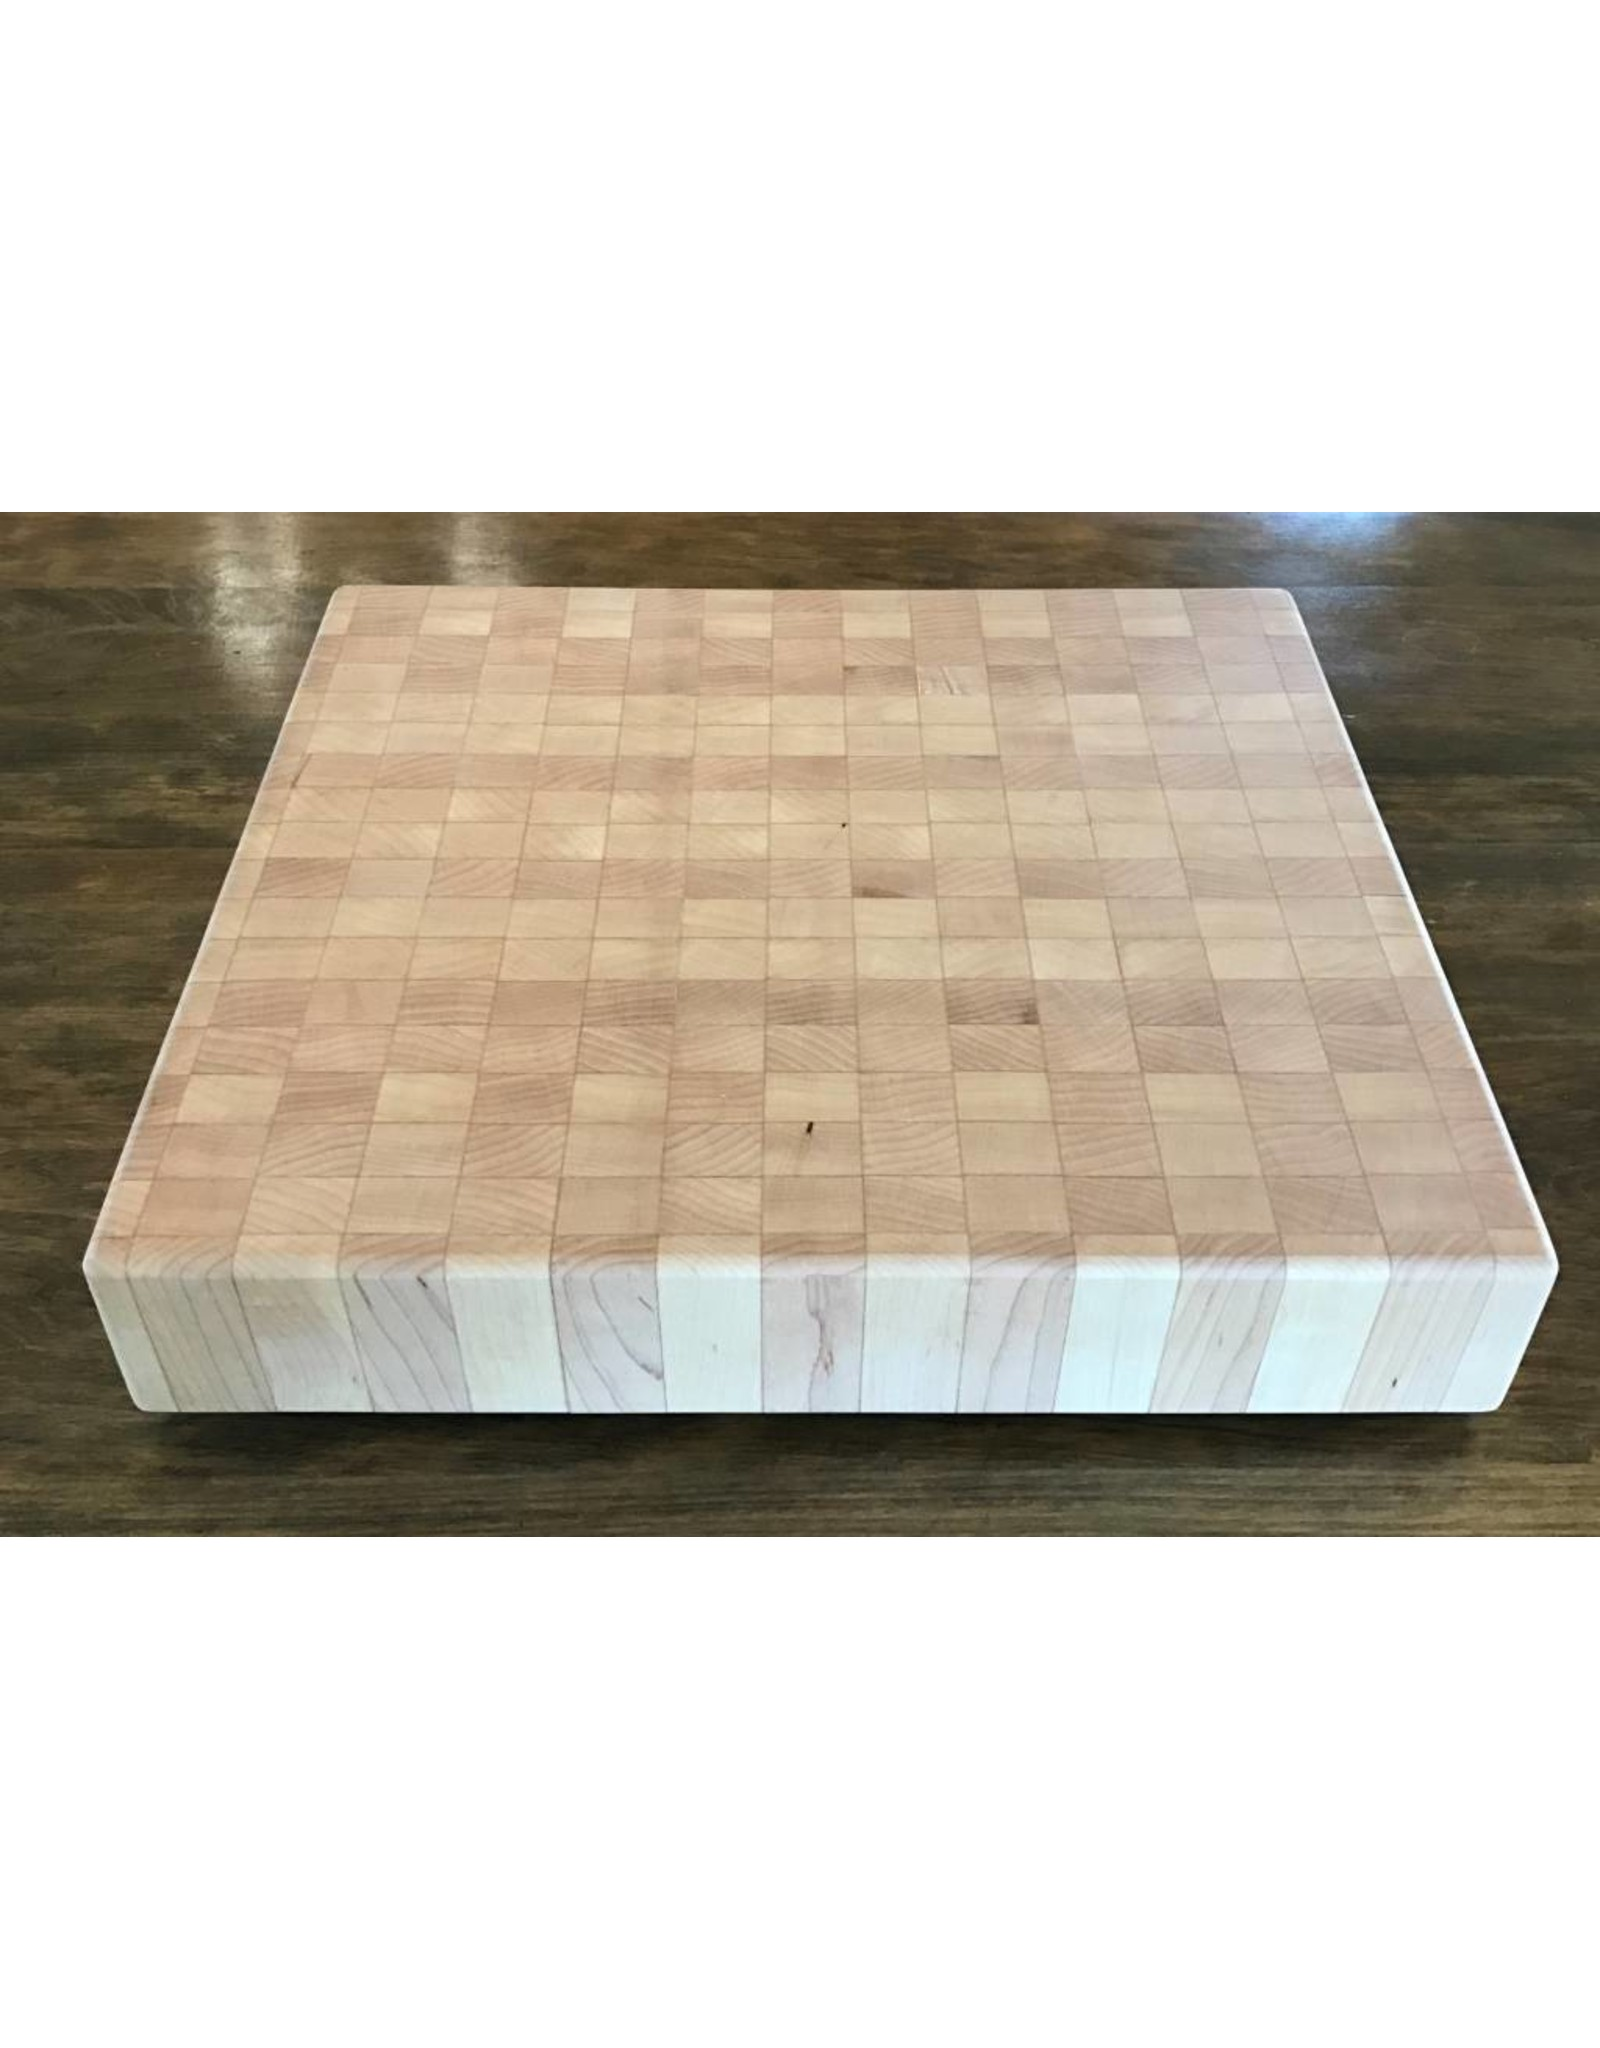 Richard Rose Culinary End Grain Maple Butcher Block